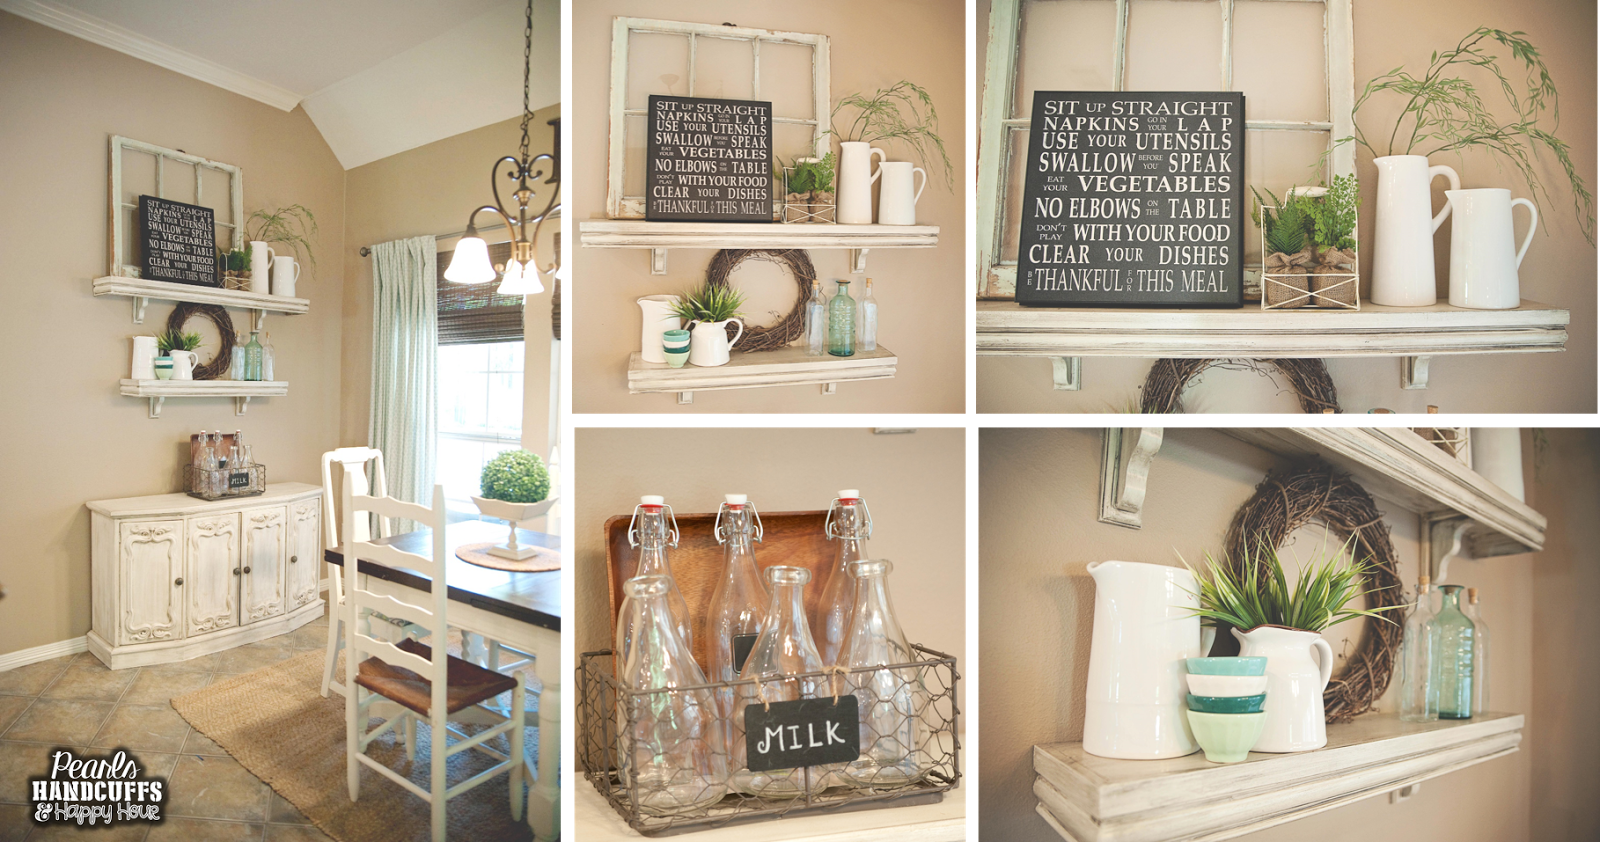 Pearls, Handcuffs, and Happy Hour: Home Tour Tuesday - The Kitchen